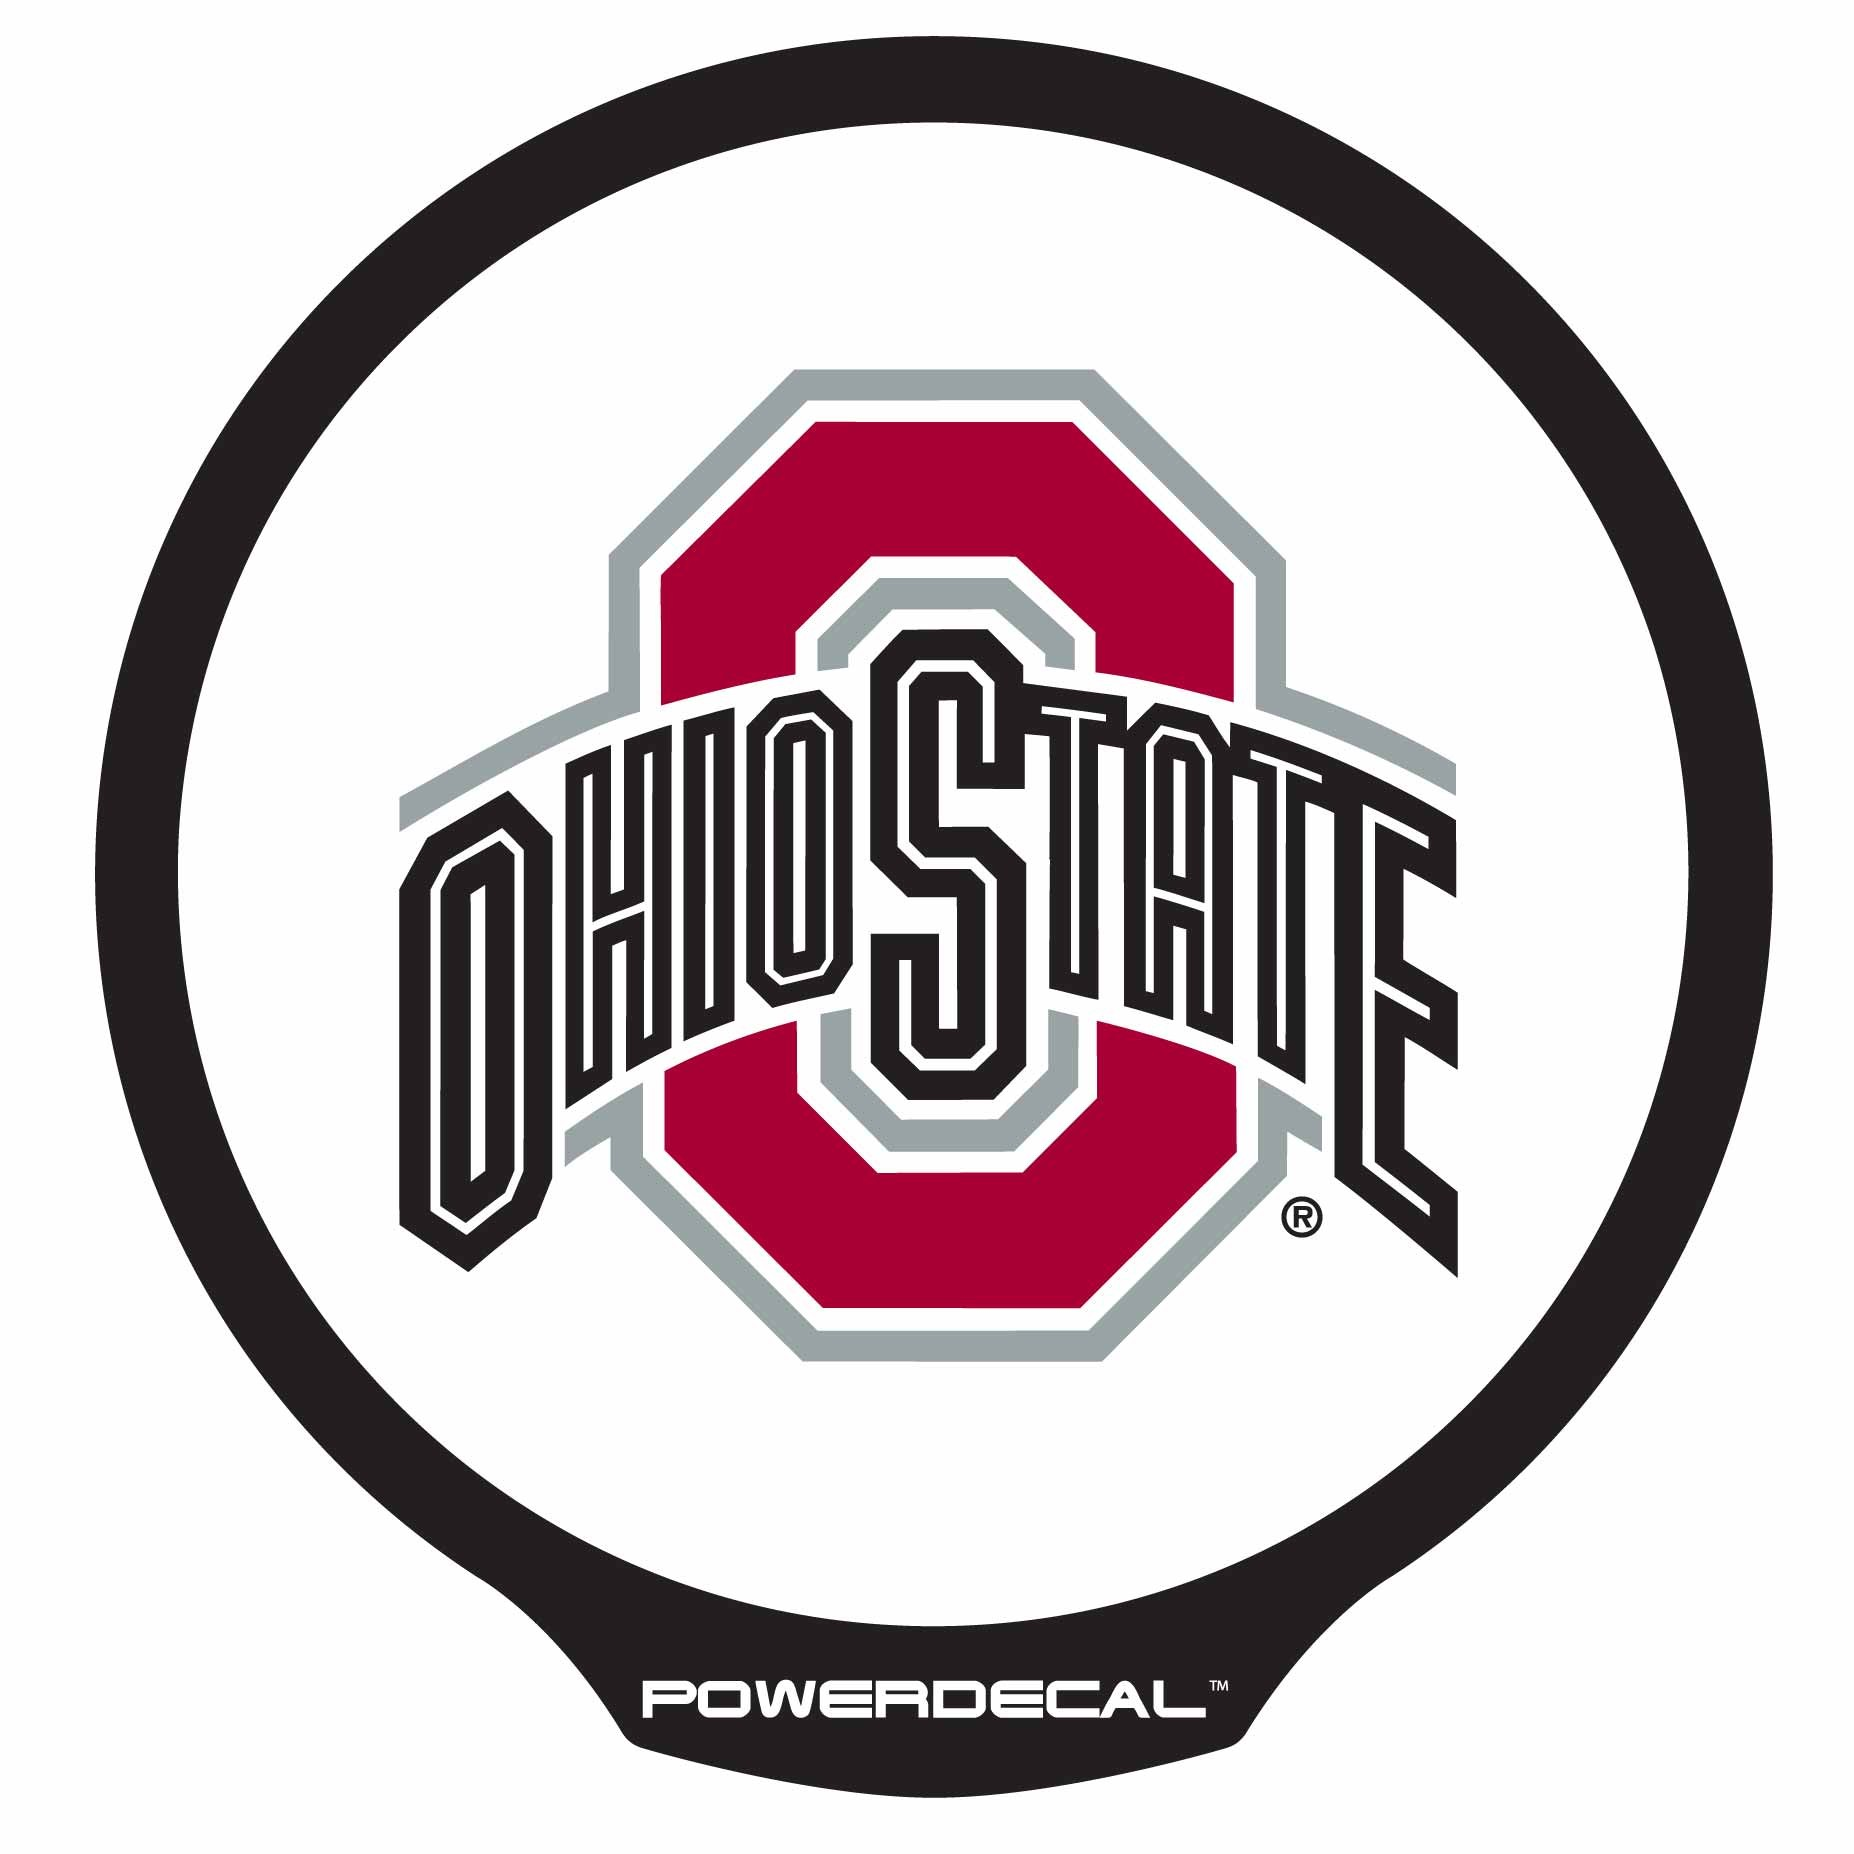 Ohio state football logo clipart svg library stock Ohio State Clipart - Clipart Kid svg library stock